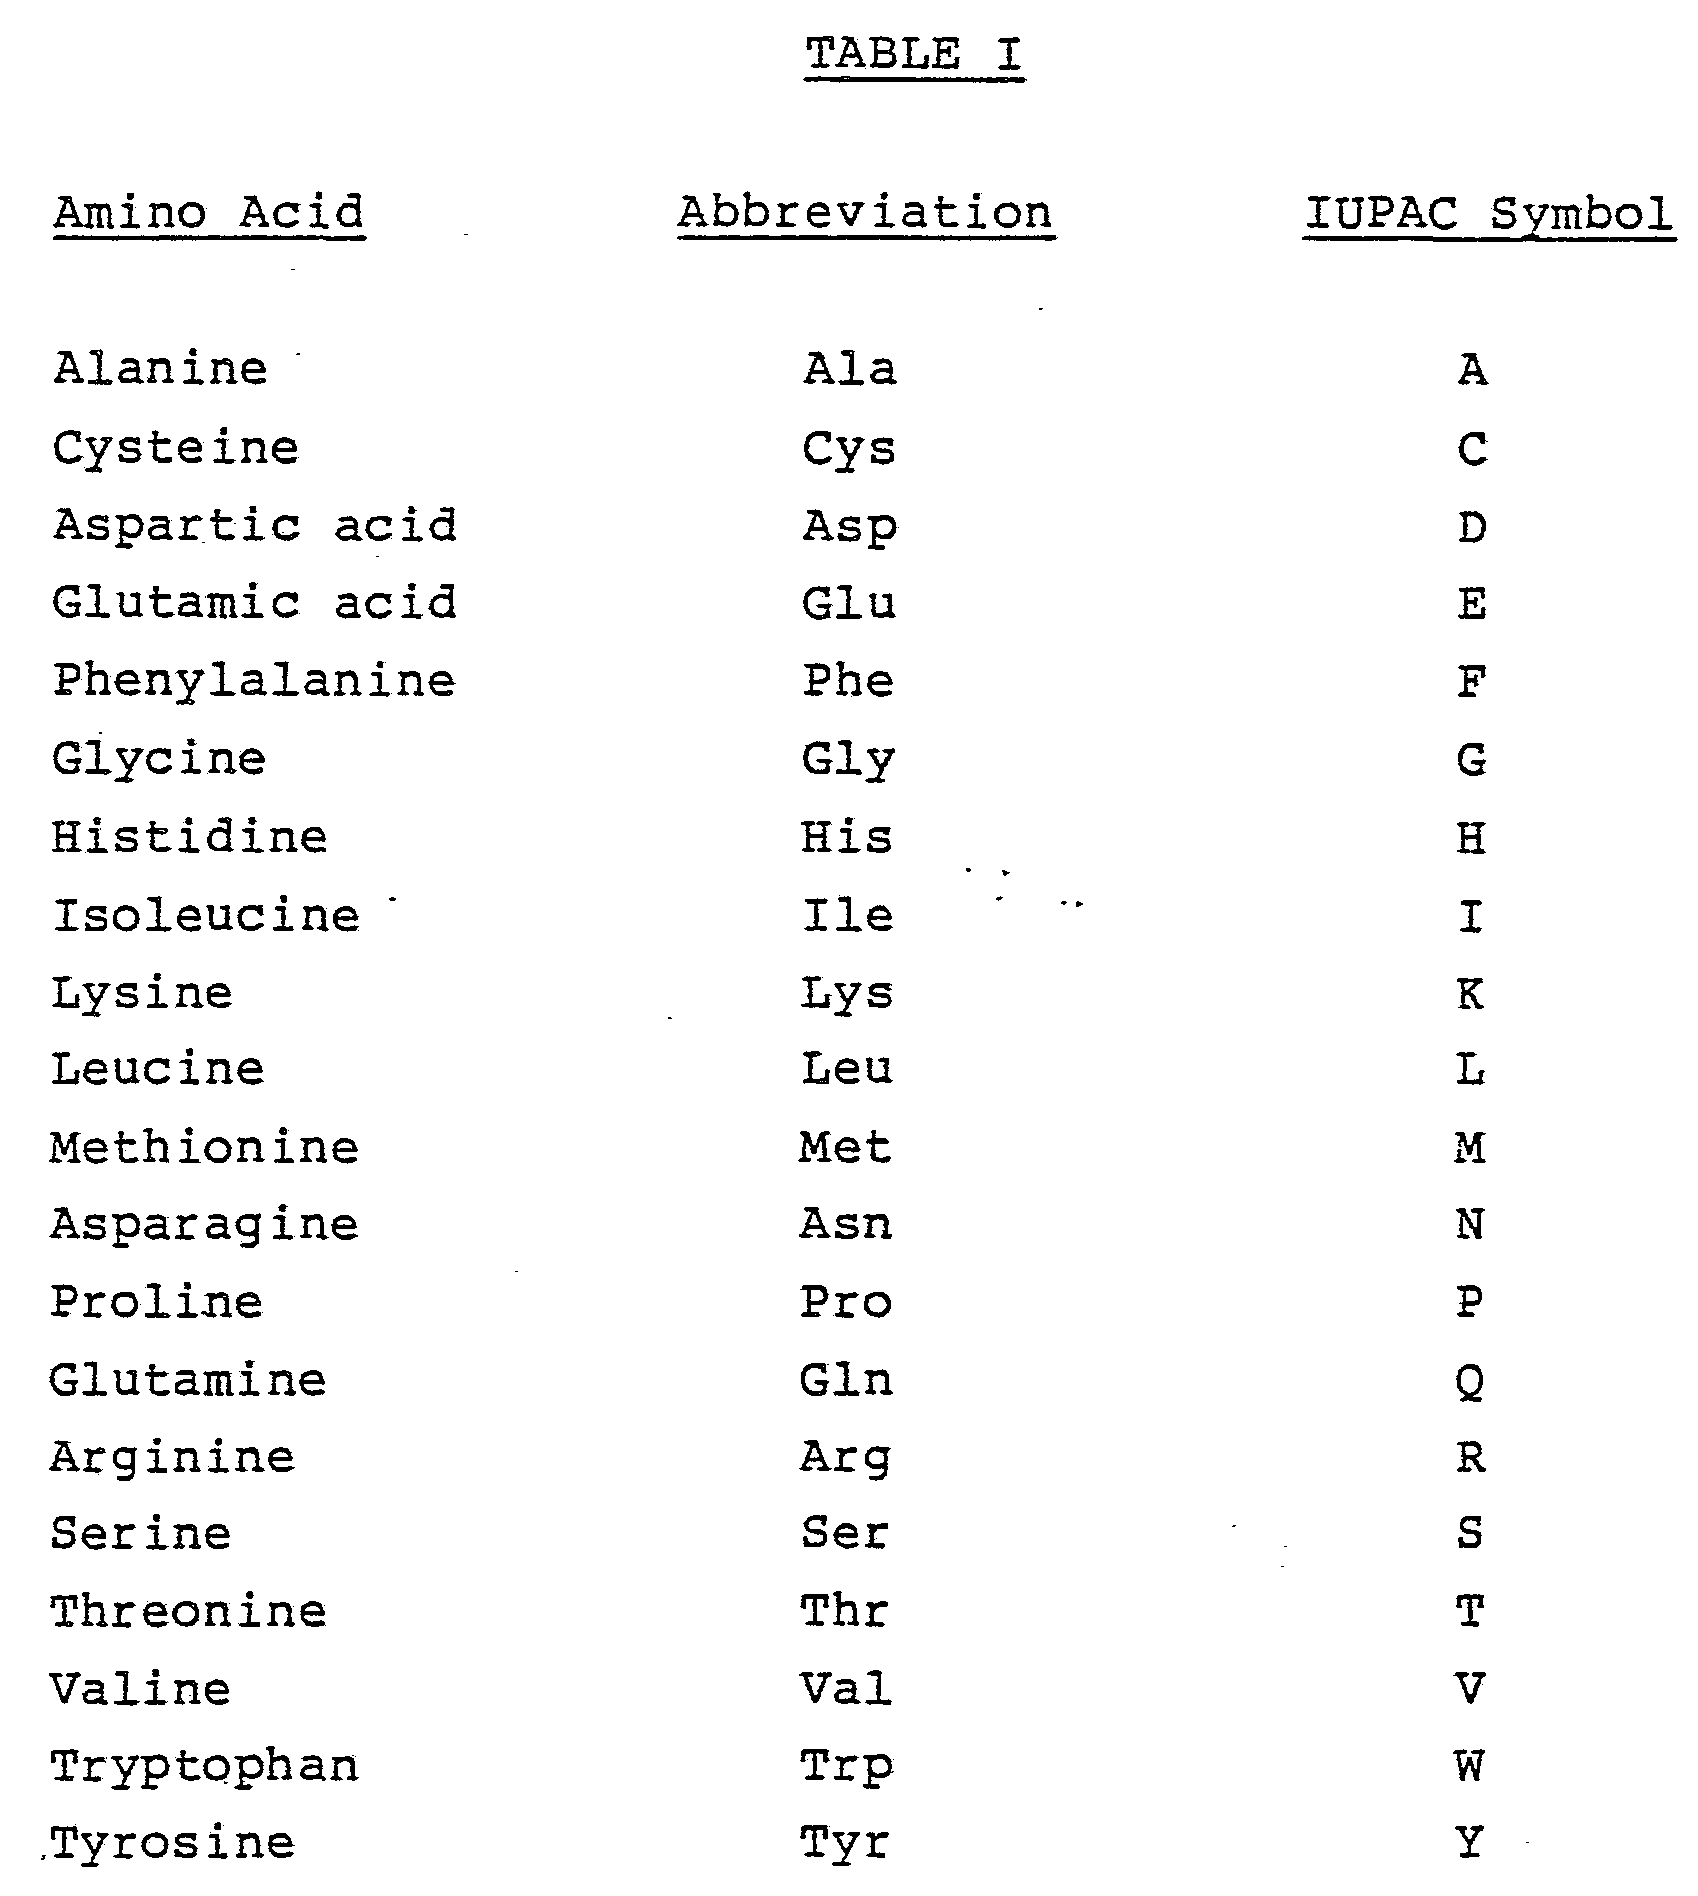 20 Amino Acid One Letter Code.86 Tutorial 1 Letter Abbreviations For Amino Acids With Generate